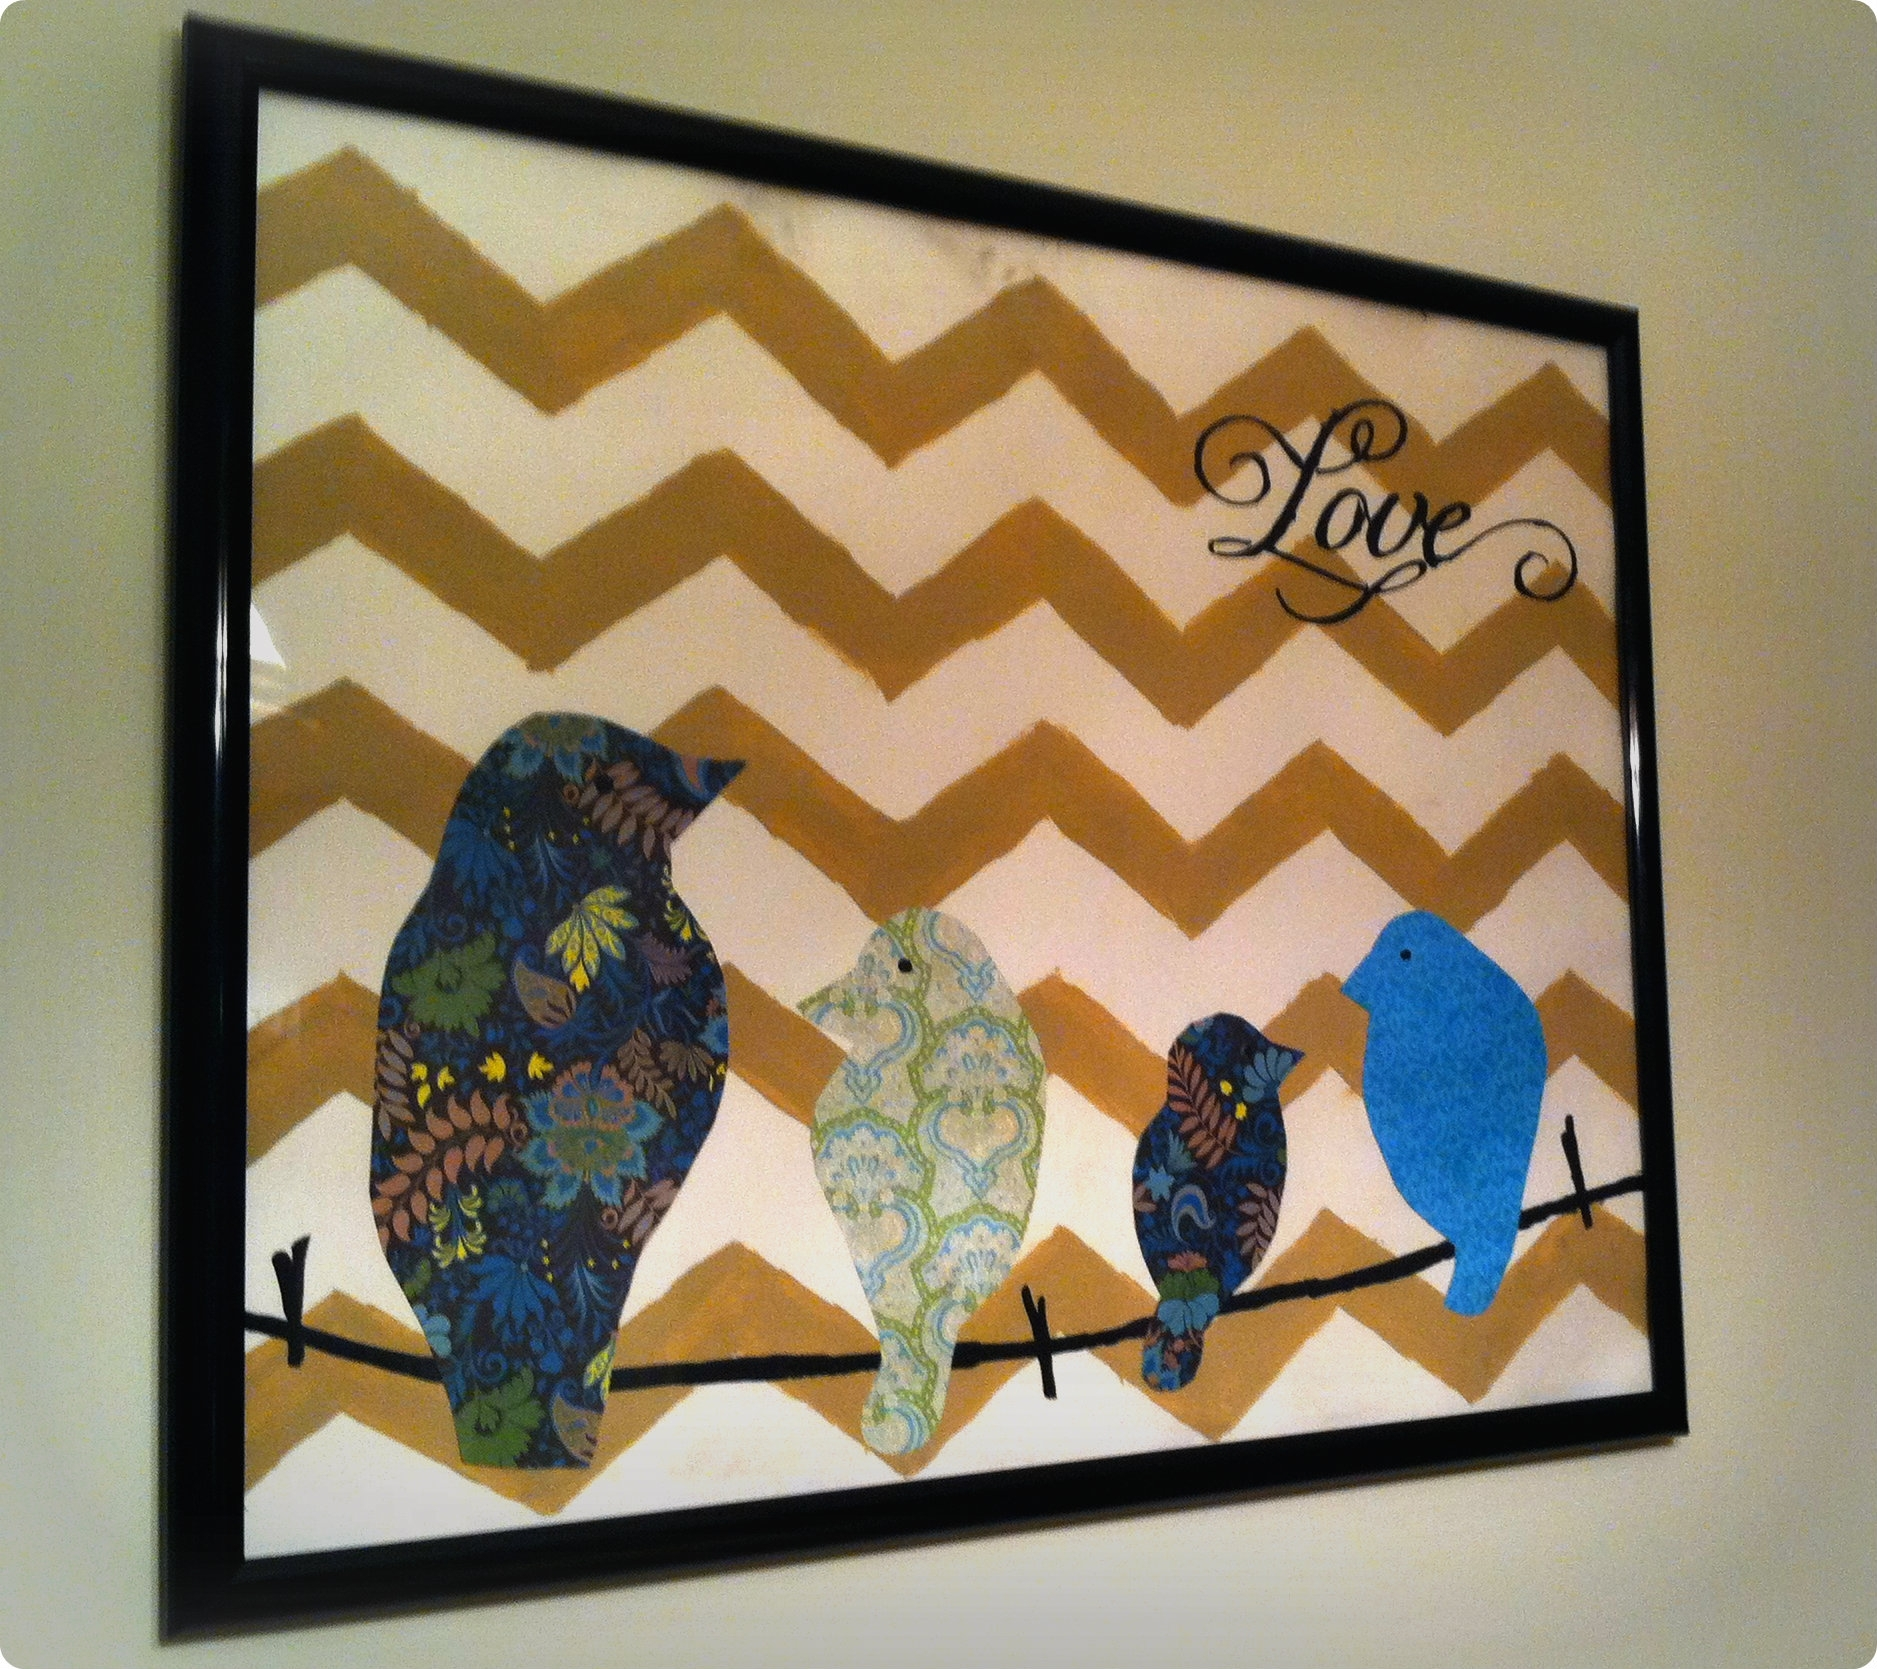 Diy Hobby Lobby Inspired Wall Art – My Life And Meals Regarding Most Recently Released Hobby Lobby Canvas Wall Art (View 3 of 15)